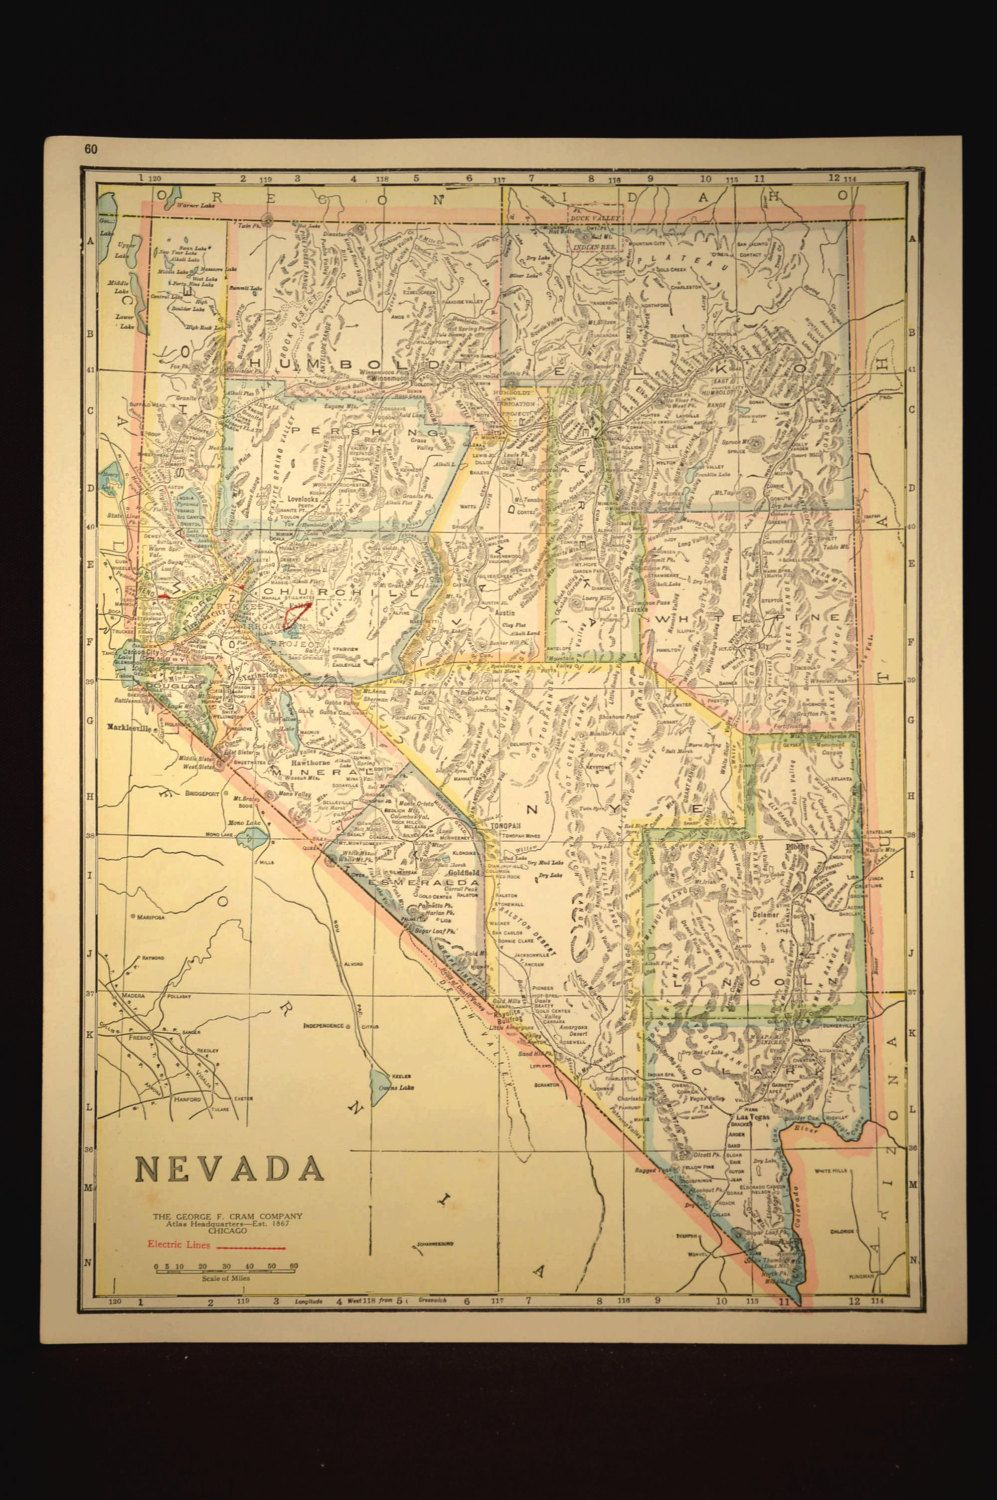 Nevada Map of Nevada Road Map Wall Decor Art Highway Map ...